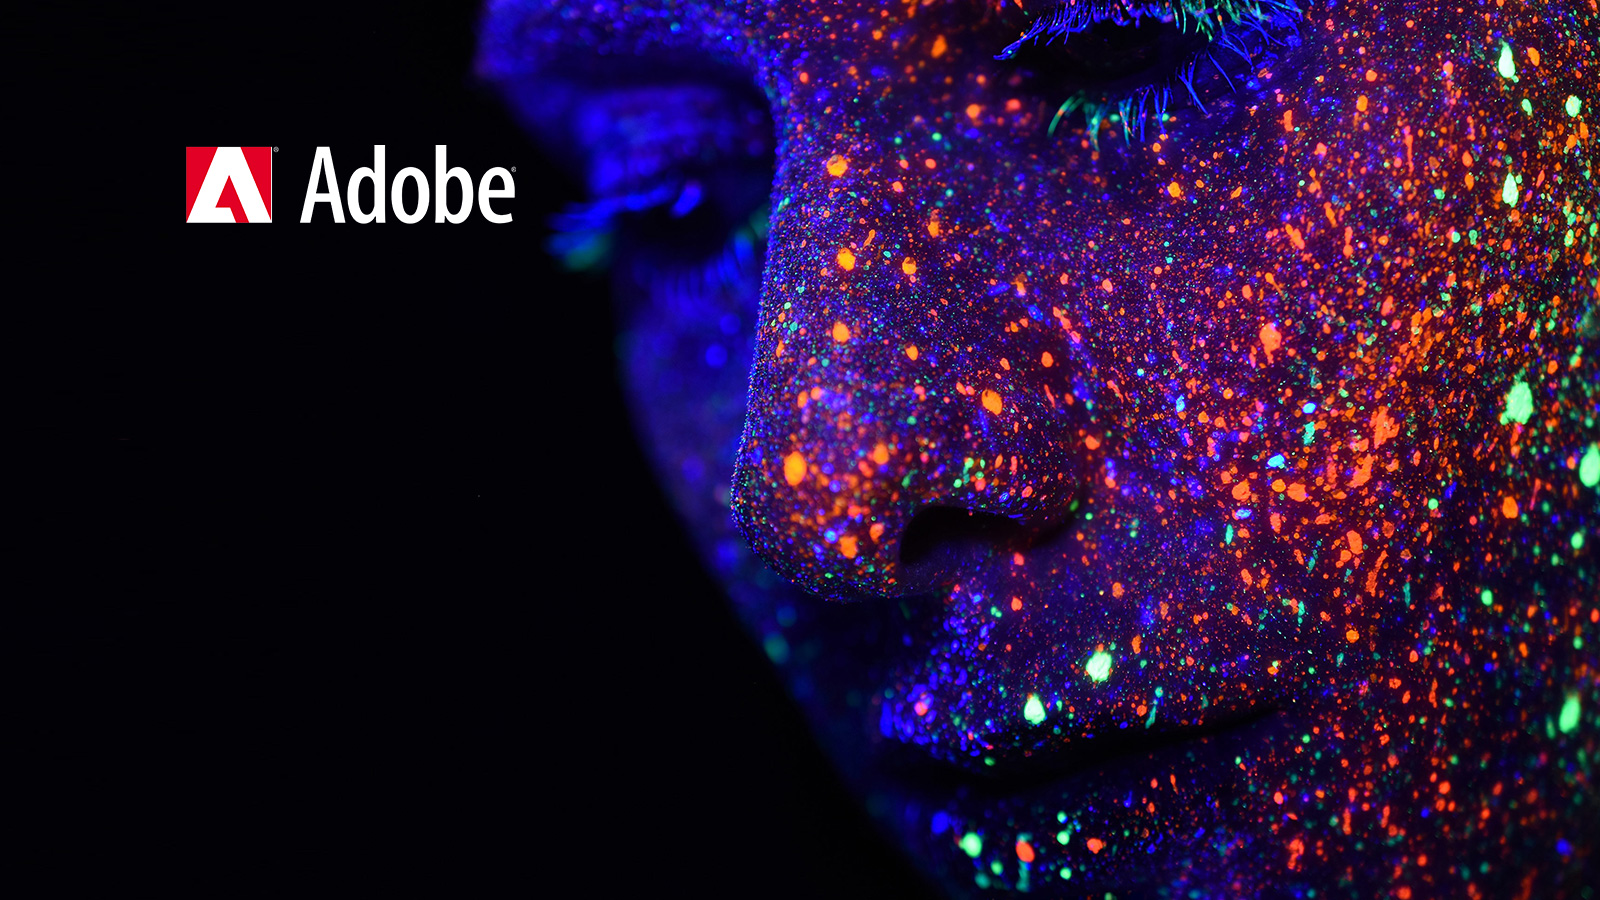 Adobe MAX 2019: Empowering Creativity for All